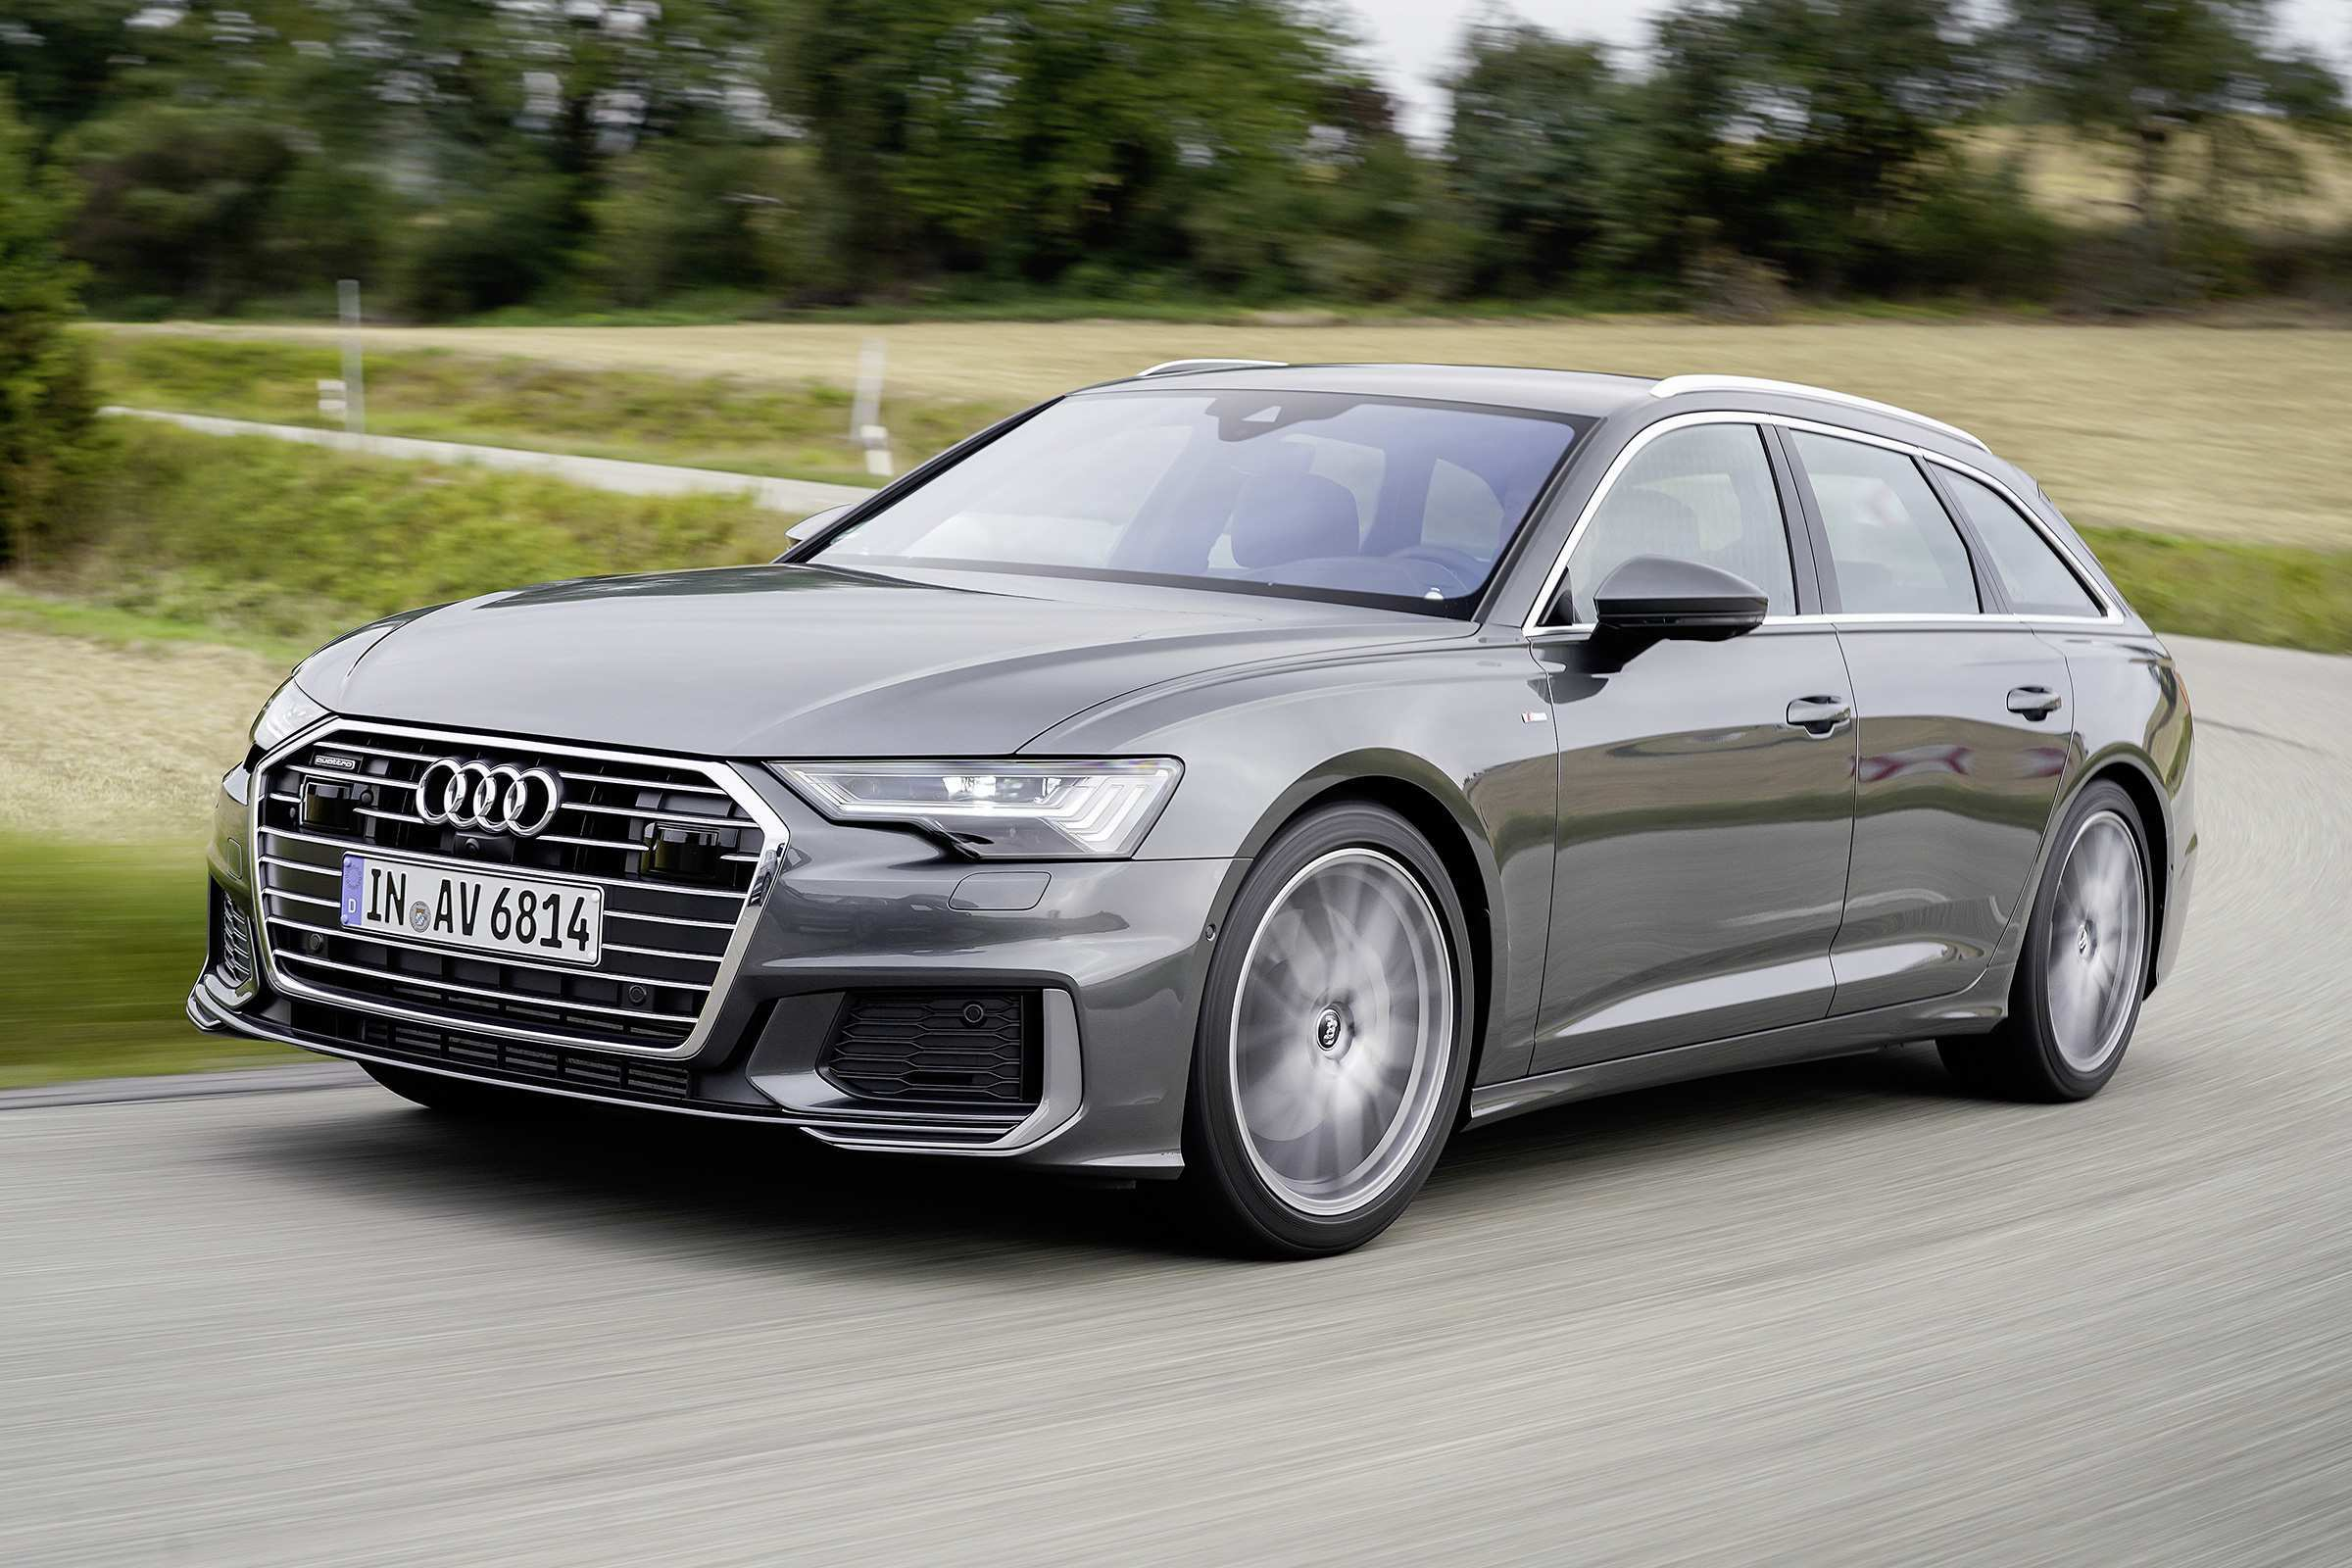 79 Great New Audi A6 S Line 2019 Picture Release Date And Review Release Date for New Audi A6 S Line 2019 Picture Release Date And Review